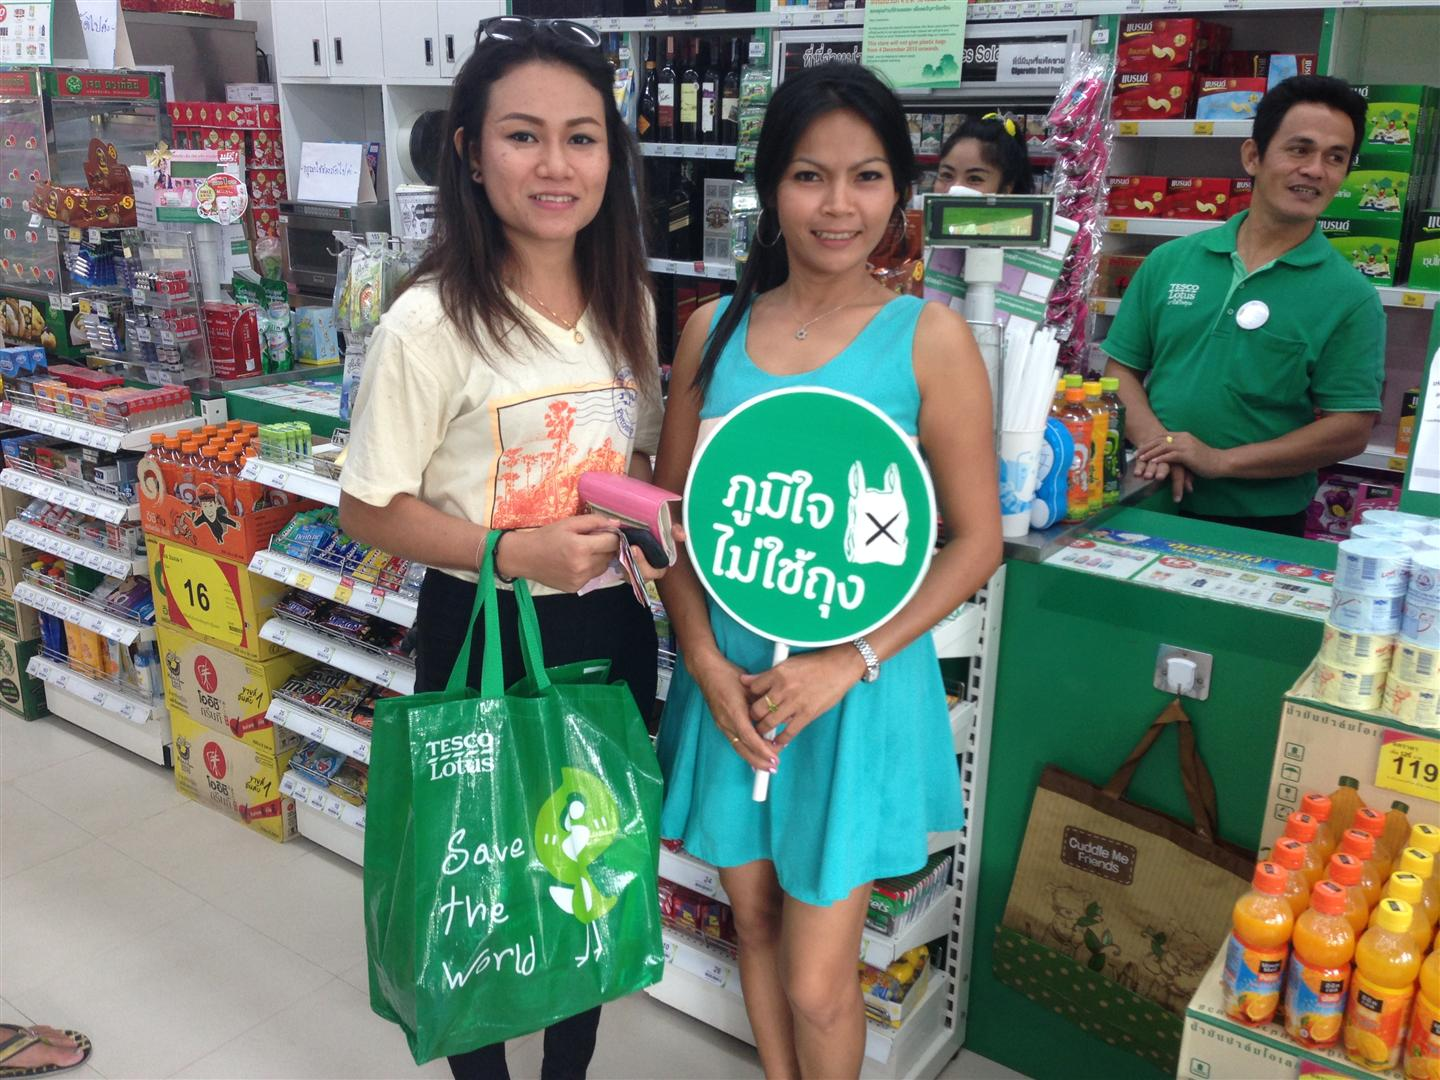 Tesco Lotus piloting No Bag Stores in Koh Samui and Phuket | Samui Times